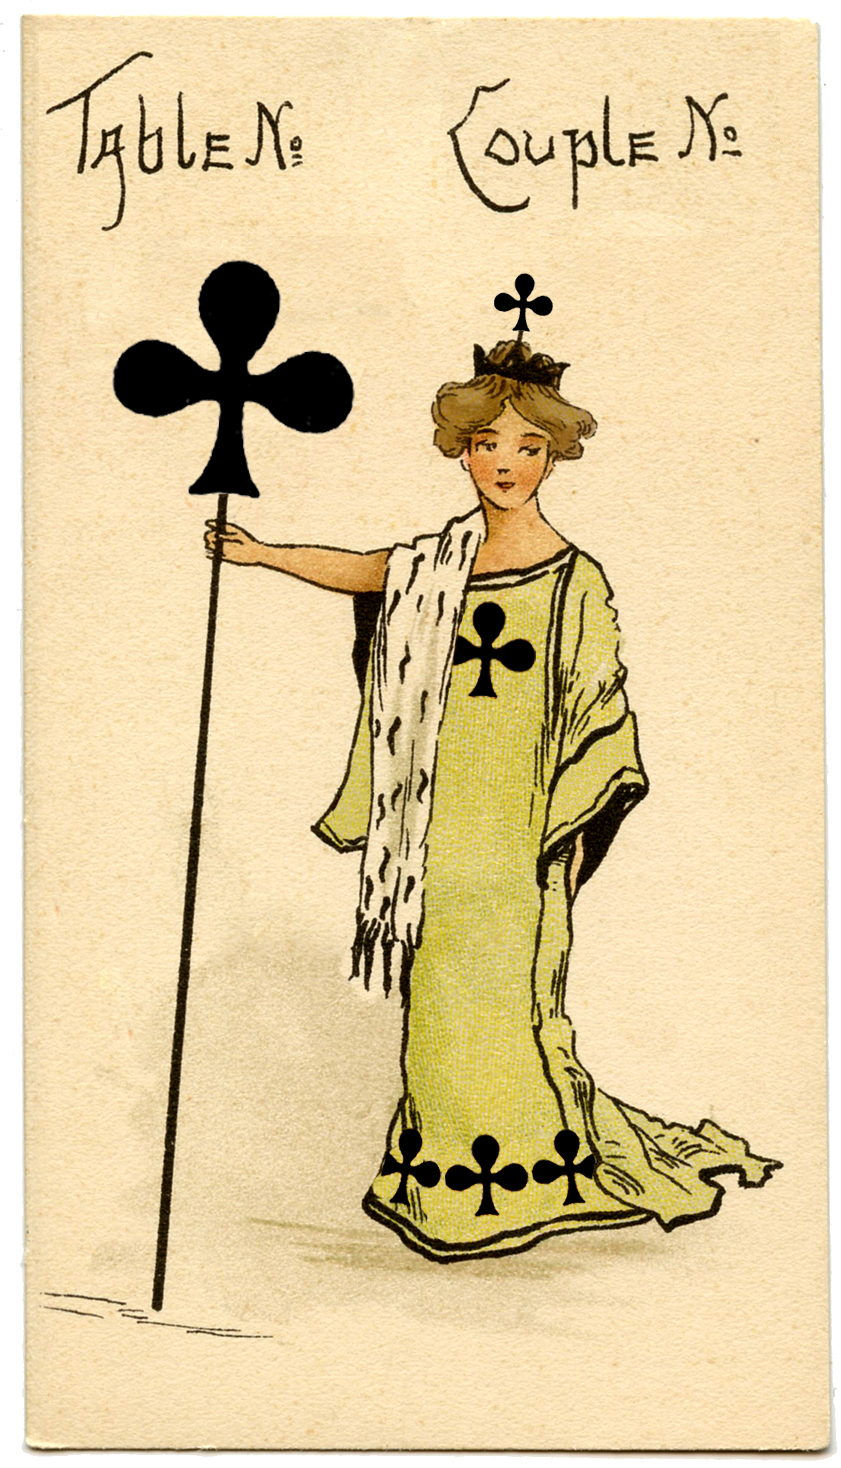 Vintage Ephemera Graphic - Queen of Clubs - The Graphics Fairy